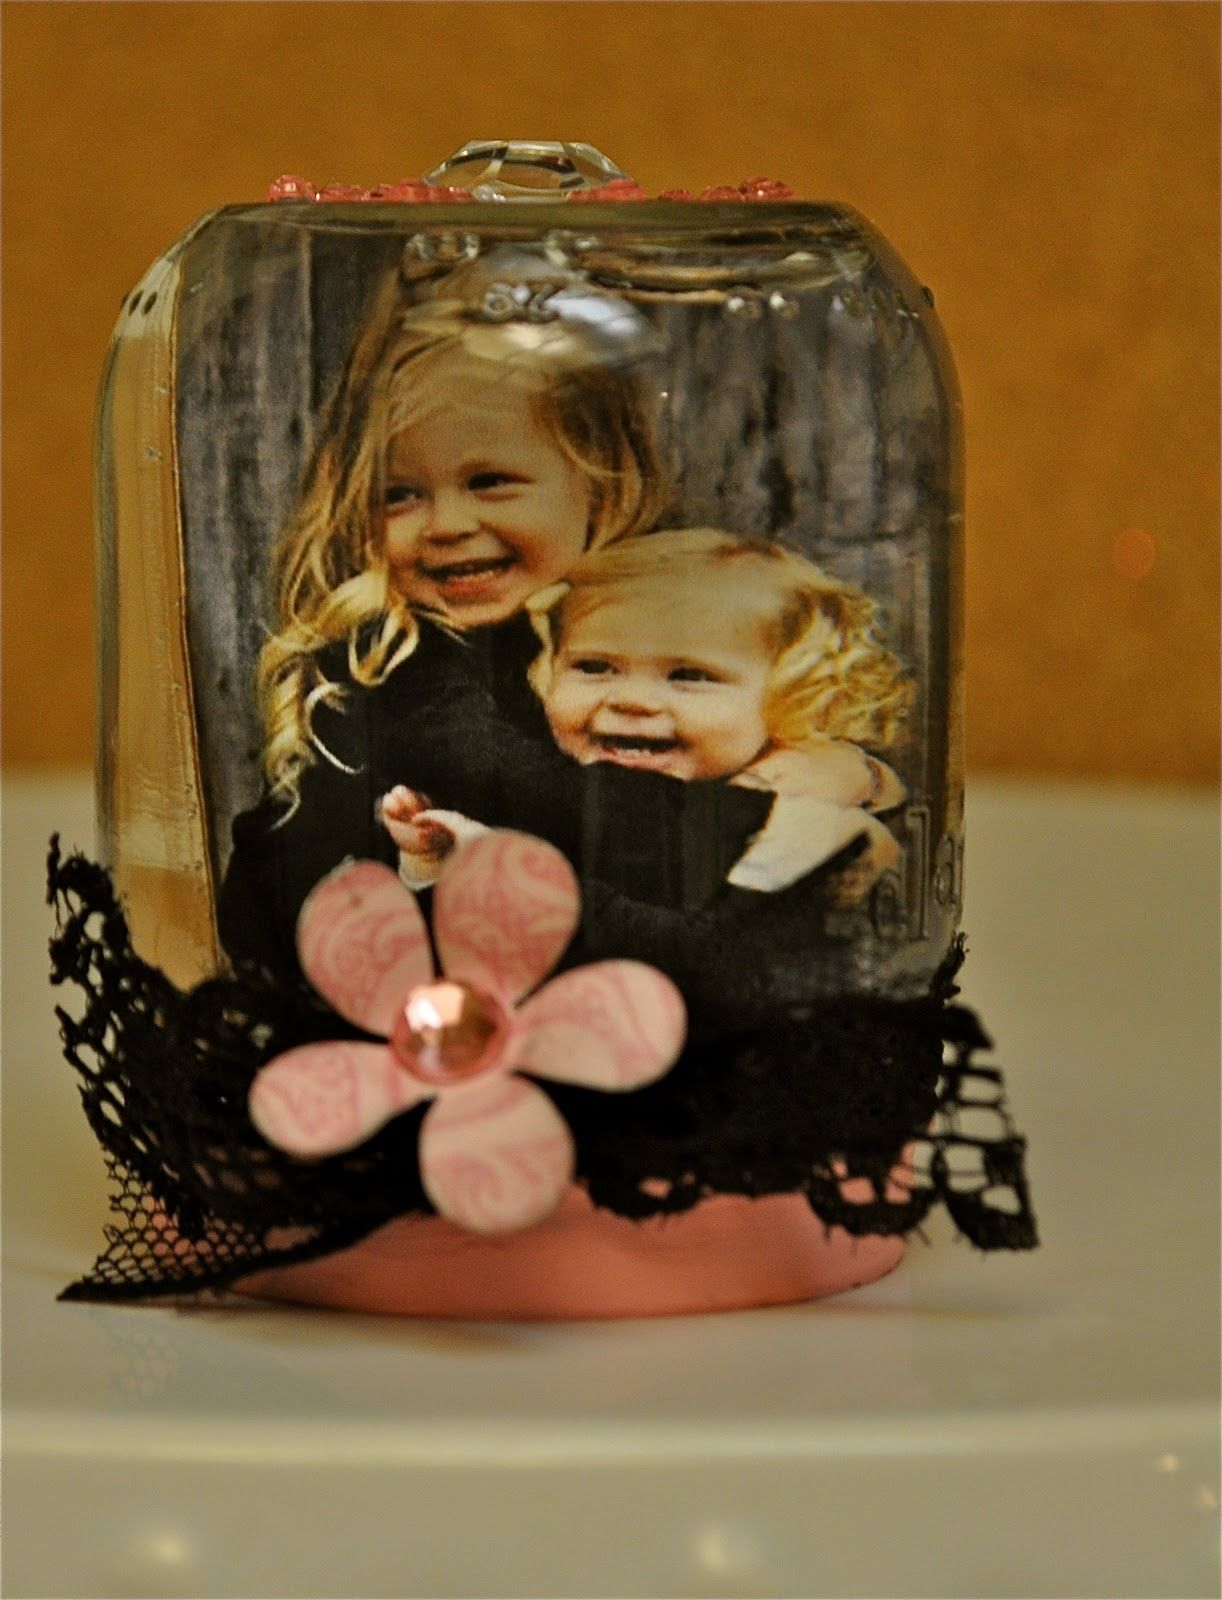 Christmas gift ideas with baby food jars